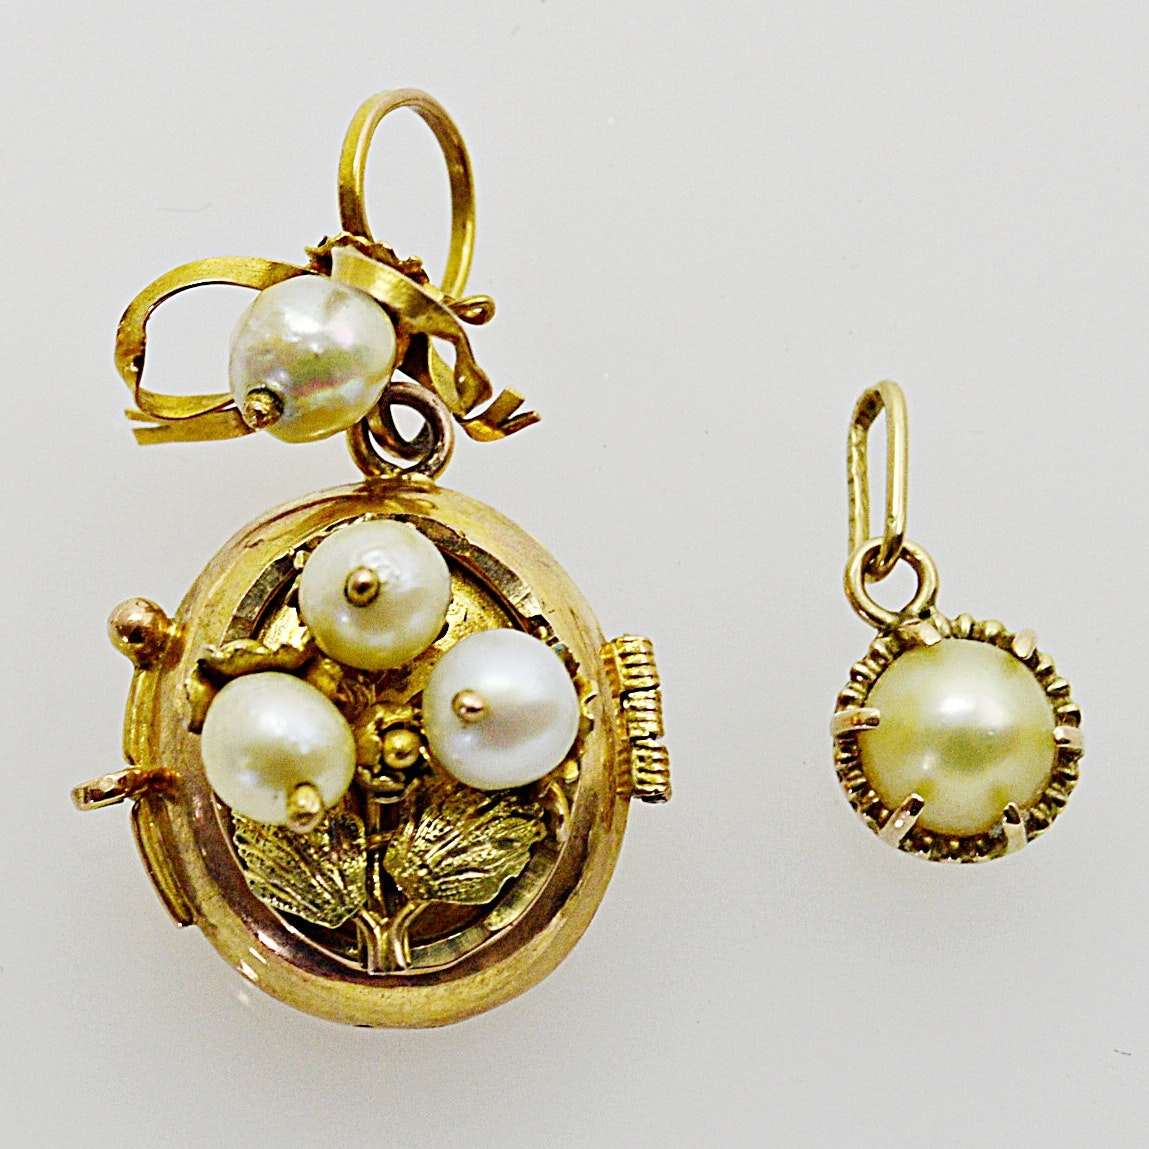 Antique 10K Yellow Gold and Pearl Locket and Pendant